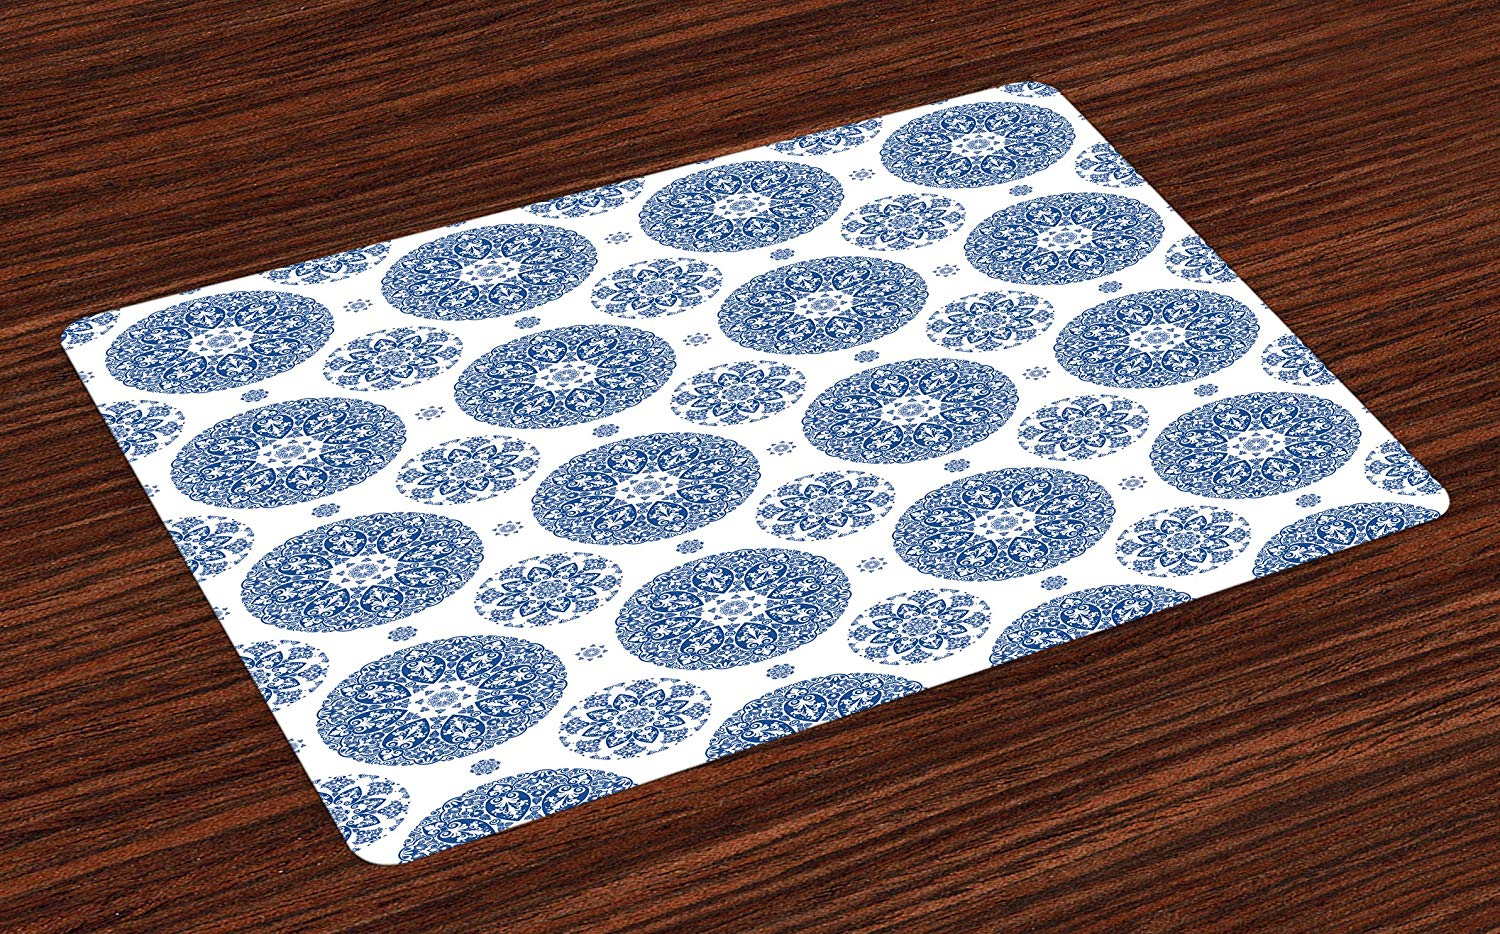 Ambesonne Vintage Place Mats Set of 4, French Country Style Floral Circular Pattern Lace Ornamental Snowflake Design Print, Washable Fabric Placemats for Dining Room Kitchen Table Decor, Blue White